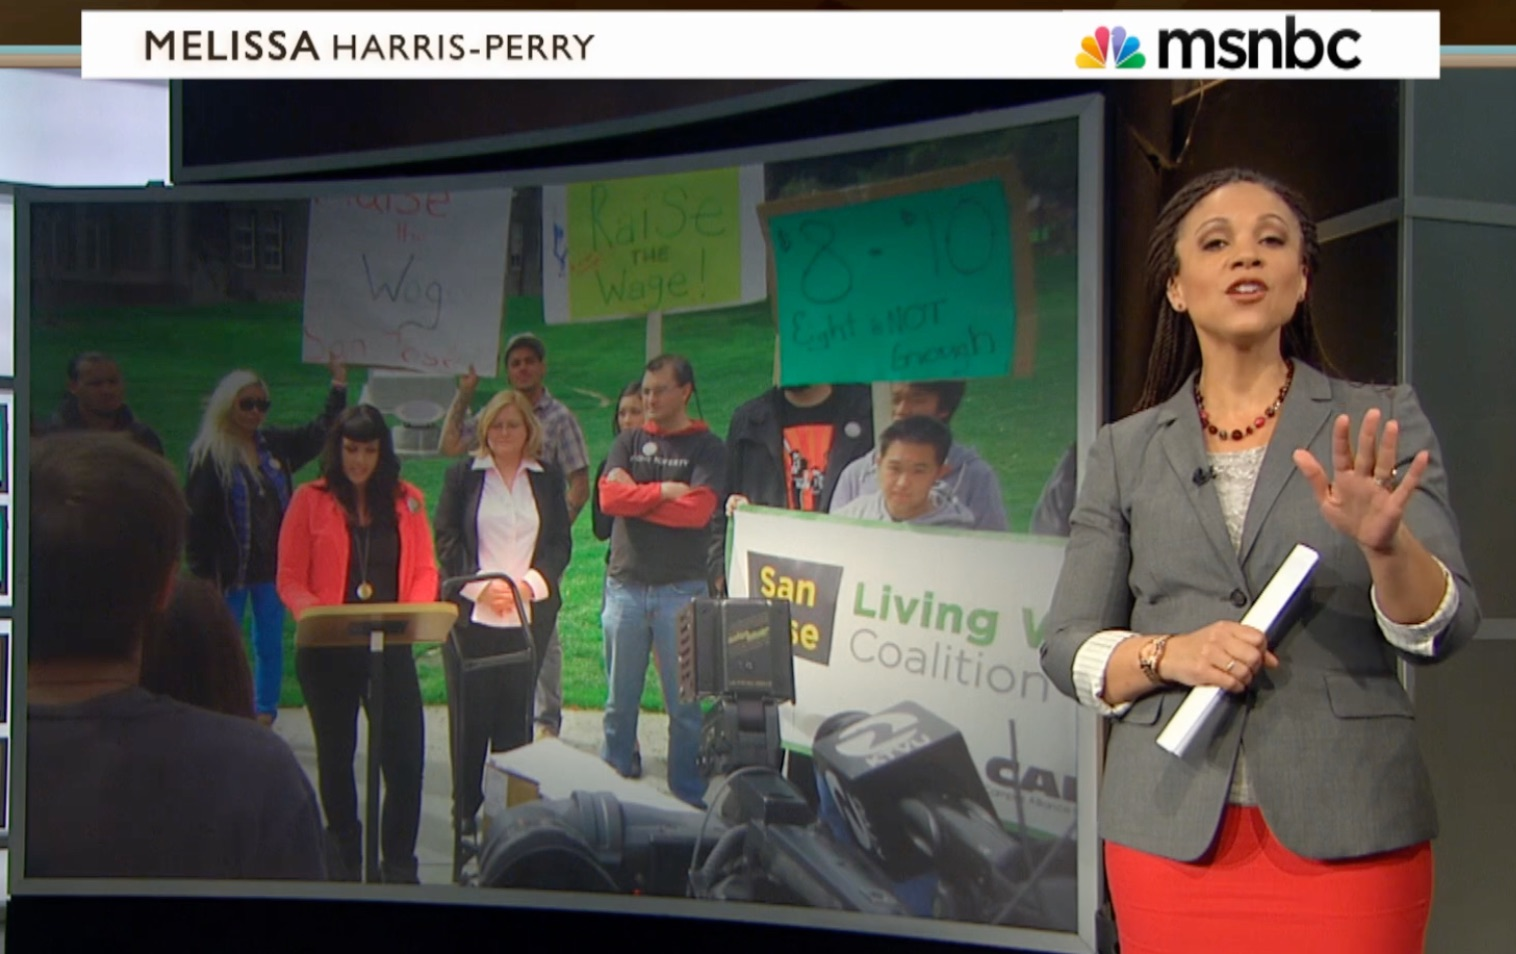 MSNBC Coverage of successful San Jose minimum wage campaign.  Click  to watch story.